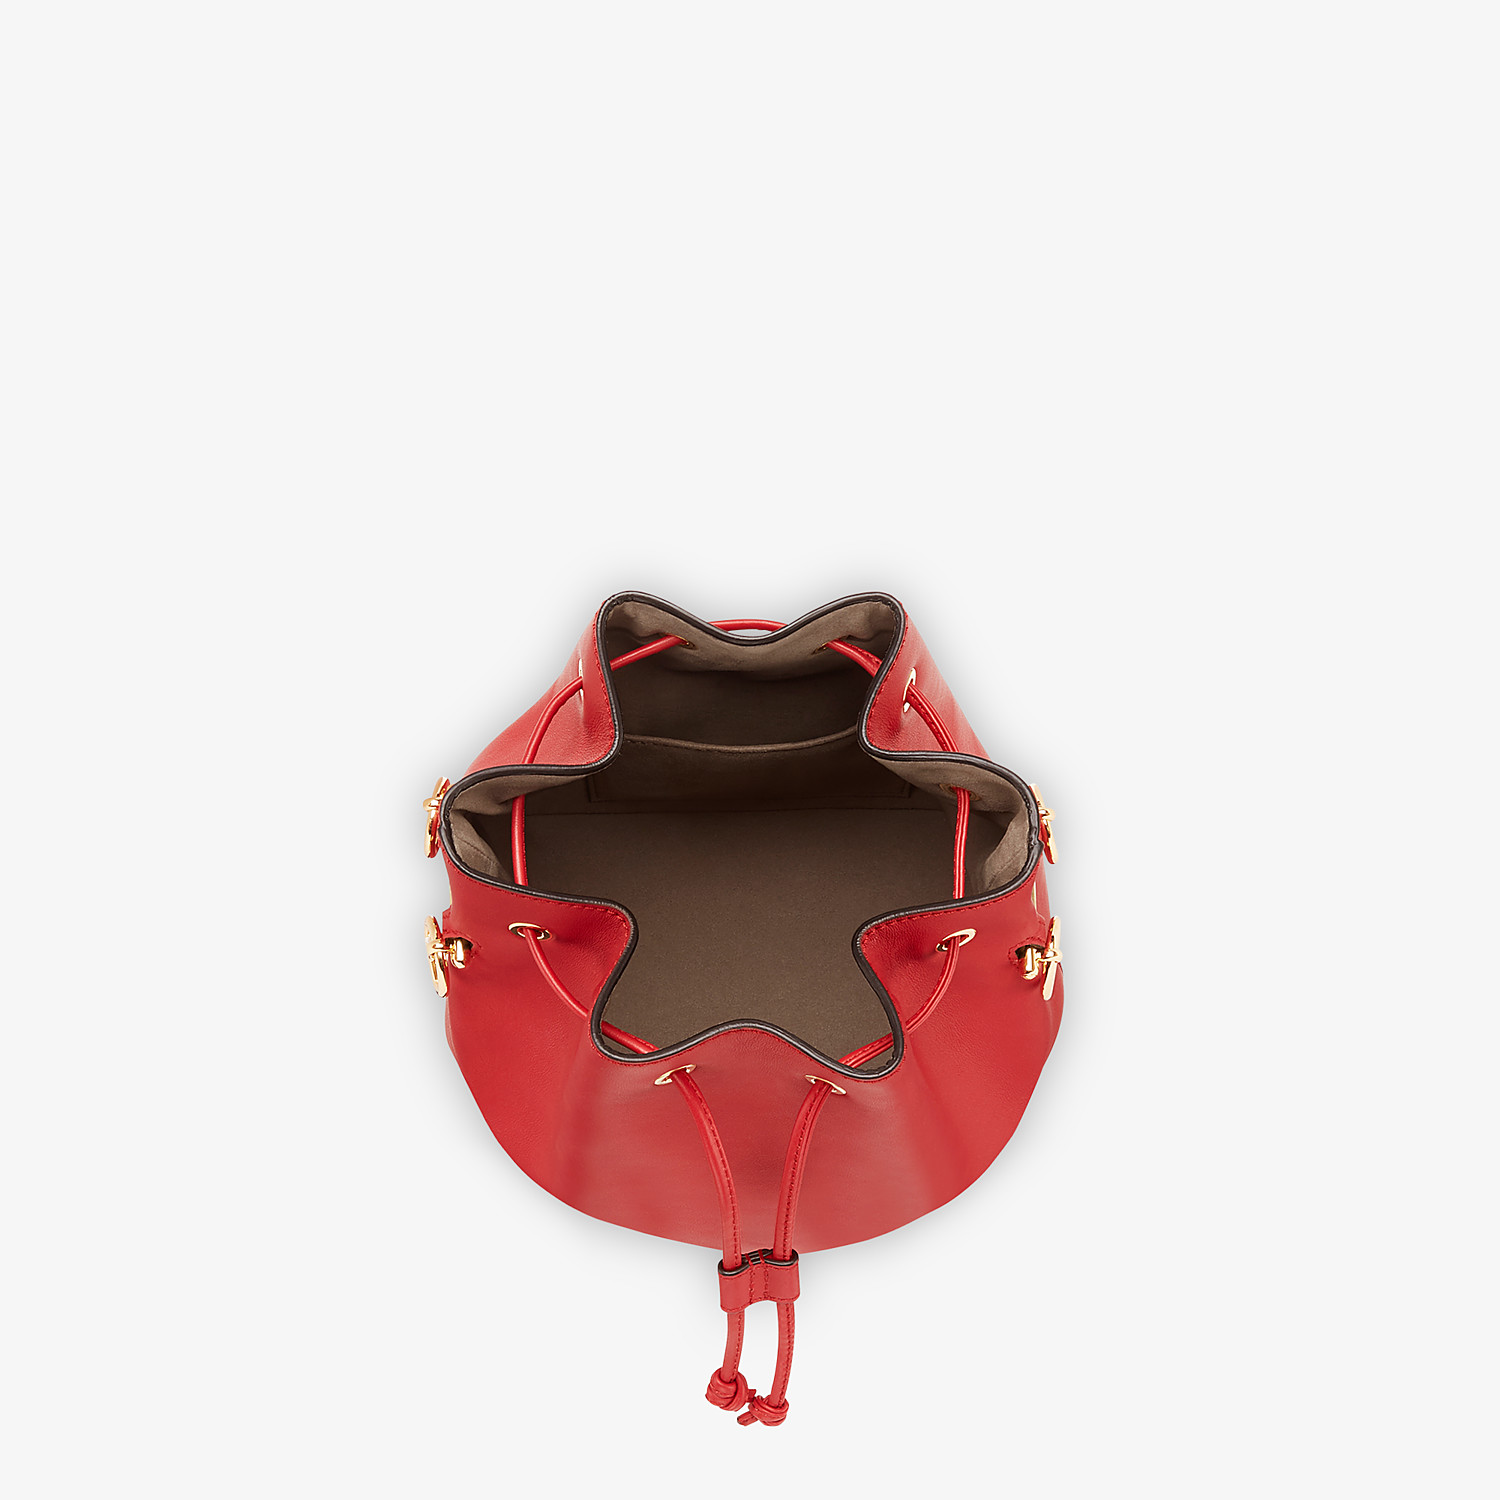 FENDI MON TRESOR - Red leather mini-bag - view 4 detail